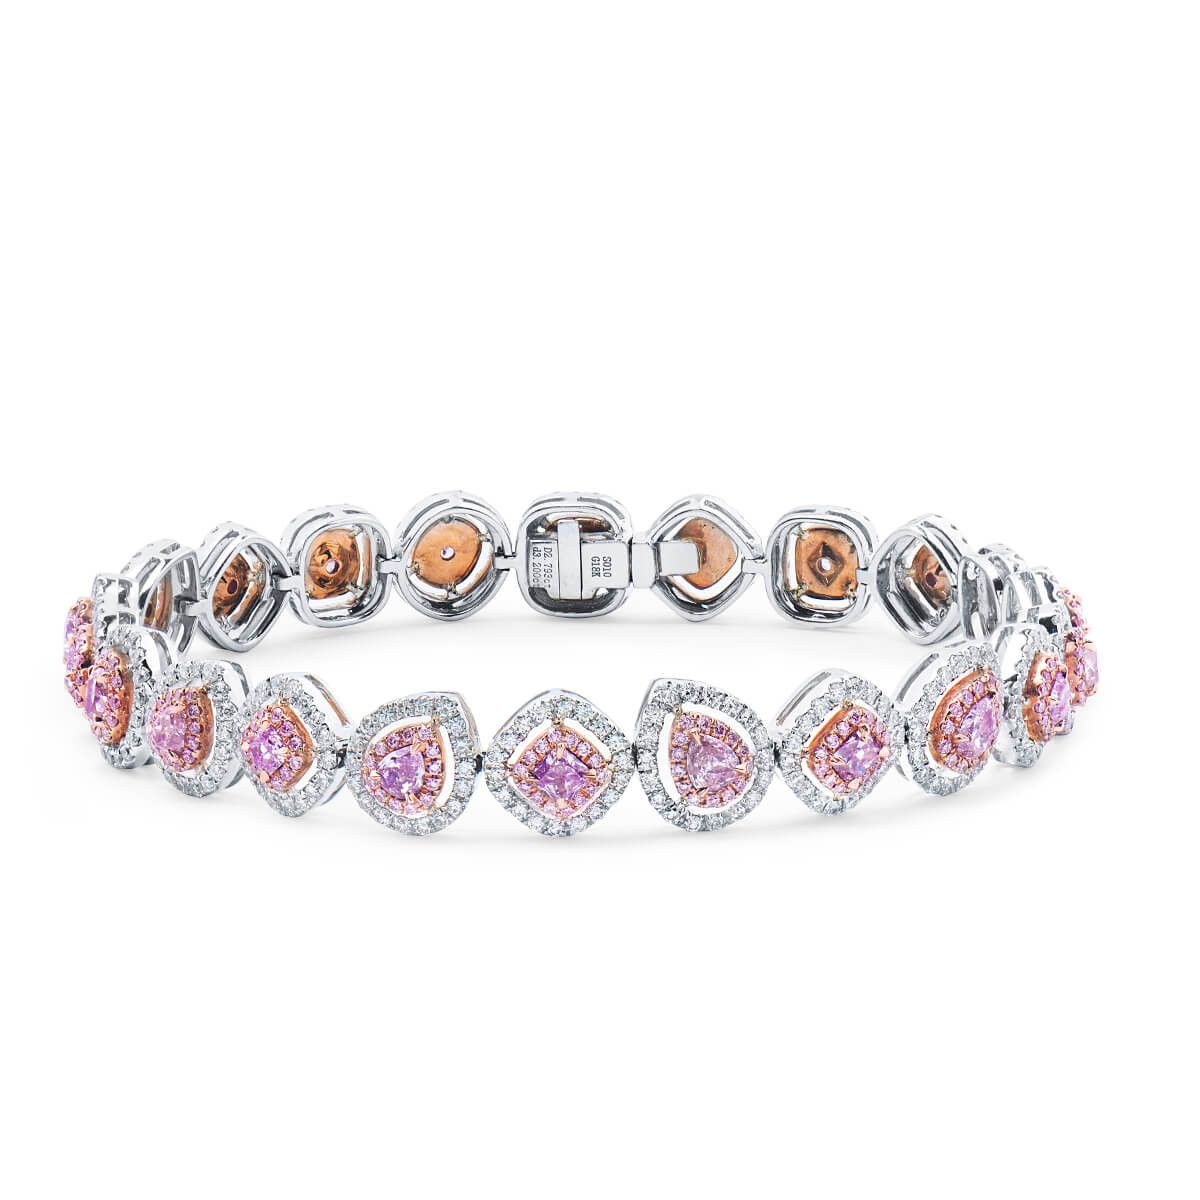 of bracelet valuable diamonds a the modern most world one gems diamond in pin history pink